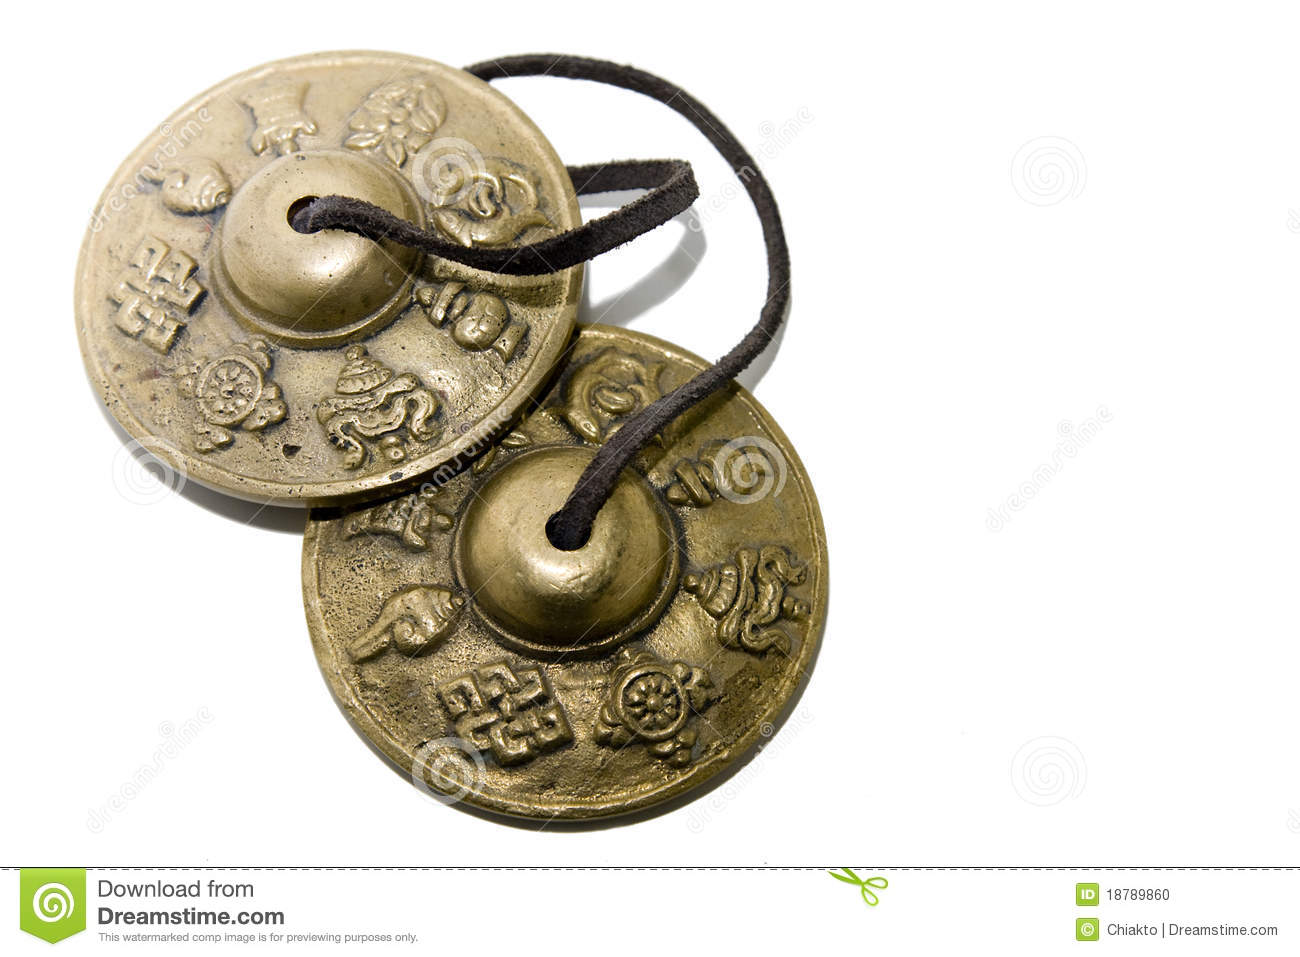 Tibetan antique musical instrument on a white background.